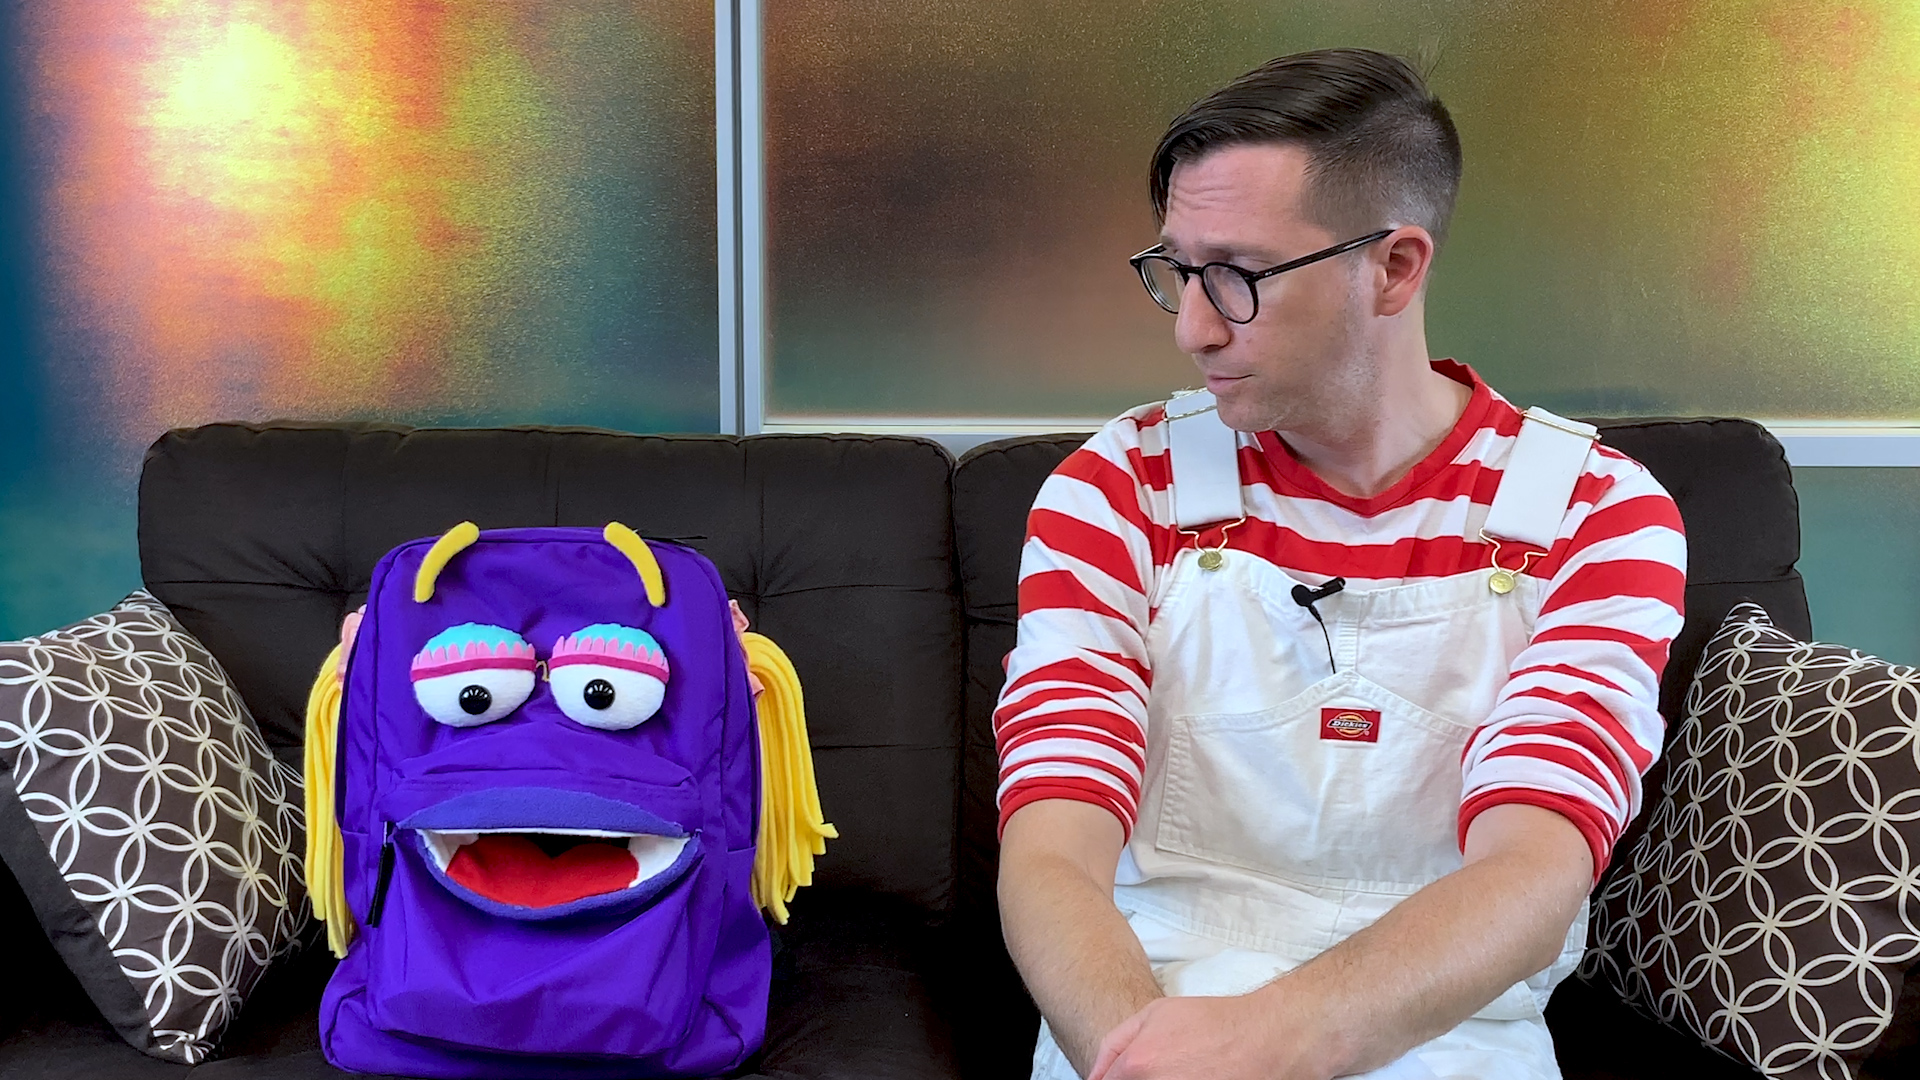 Jan the Backpack, an electronic puppet, sits on a couch next to creator Ian Charnas.